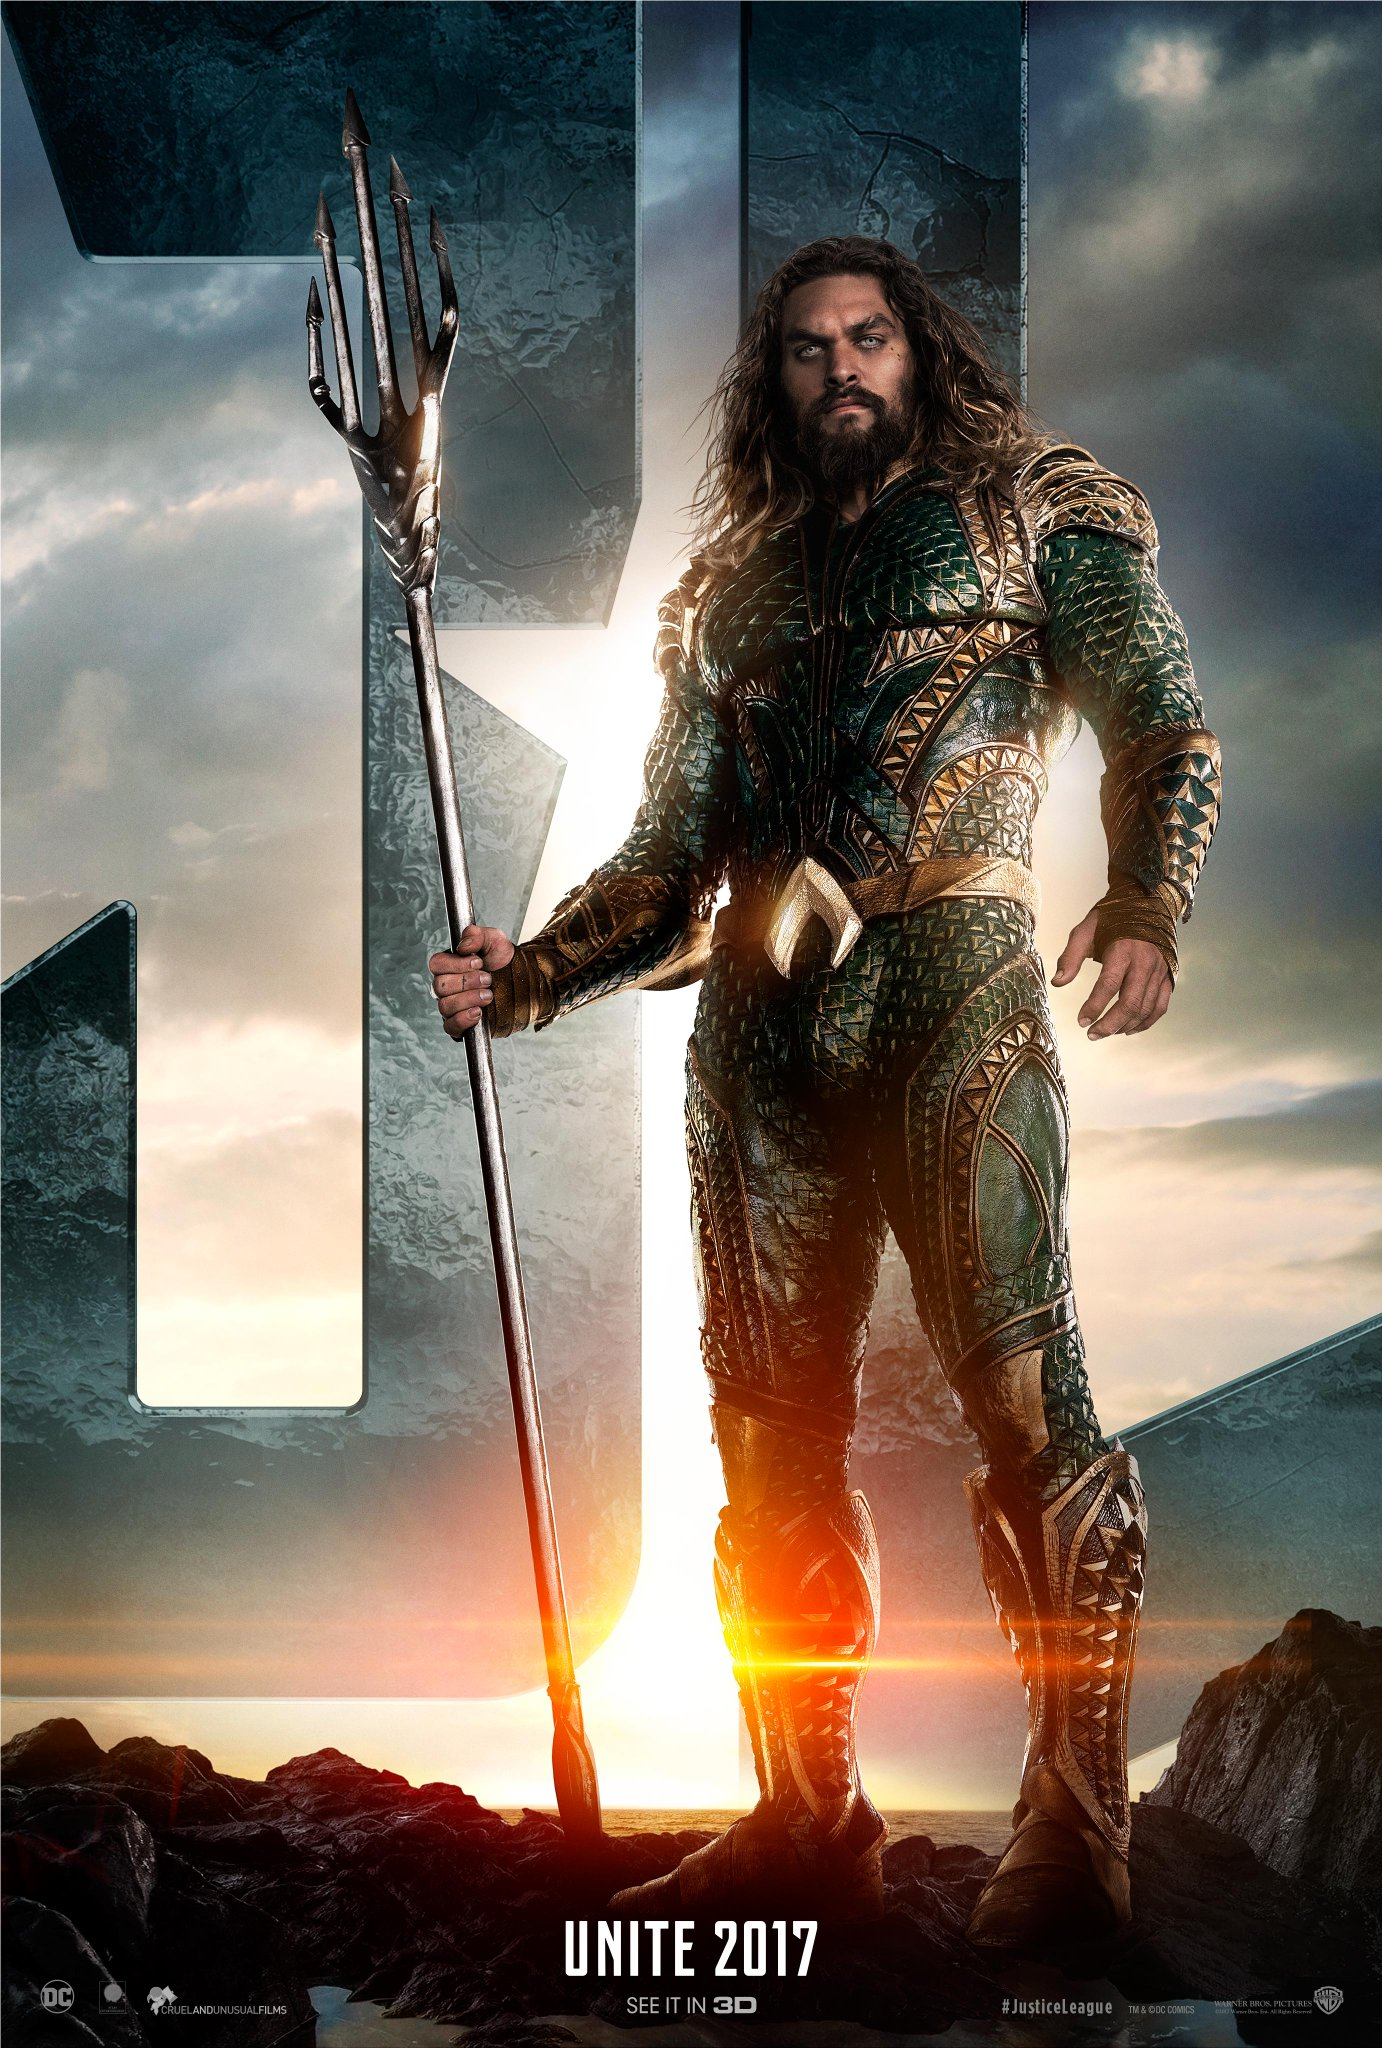 Justice League Trailer Aquaman Poster